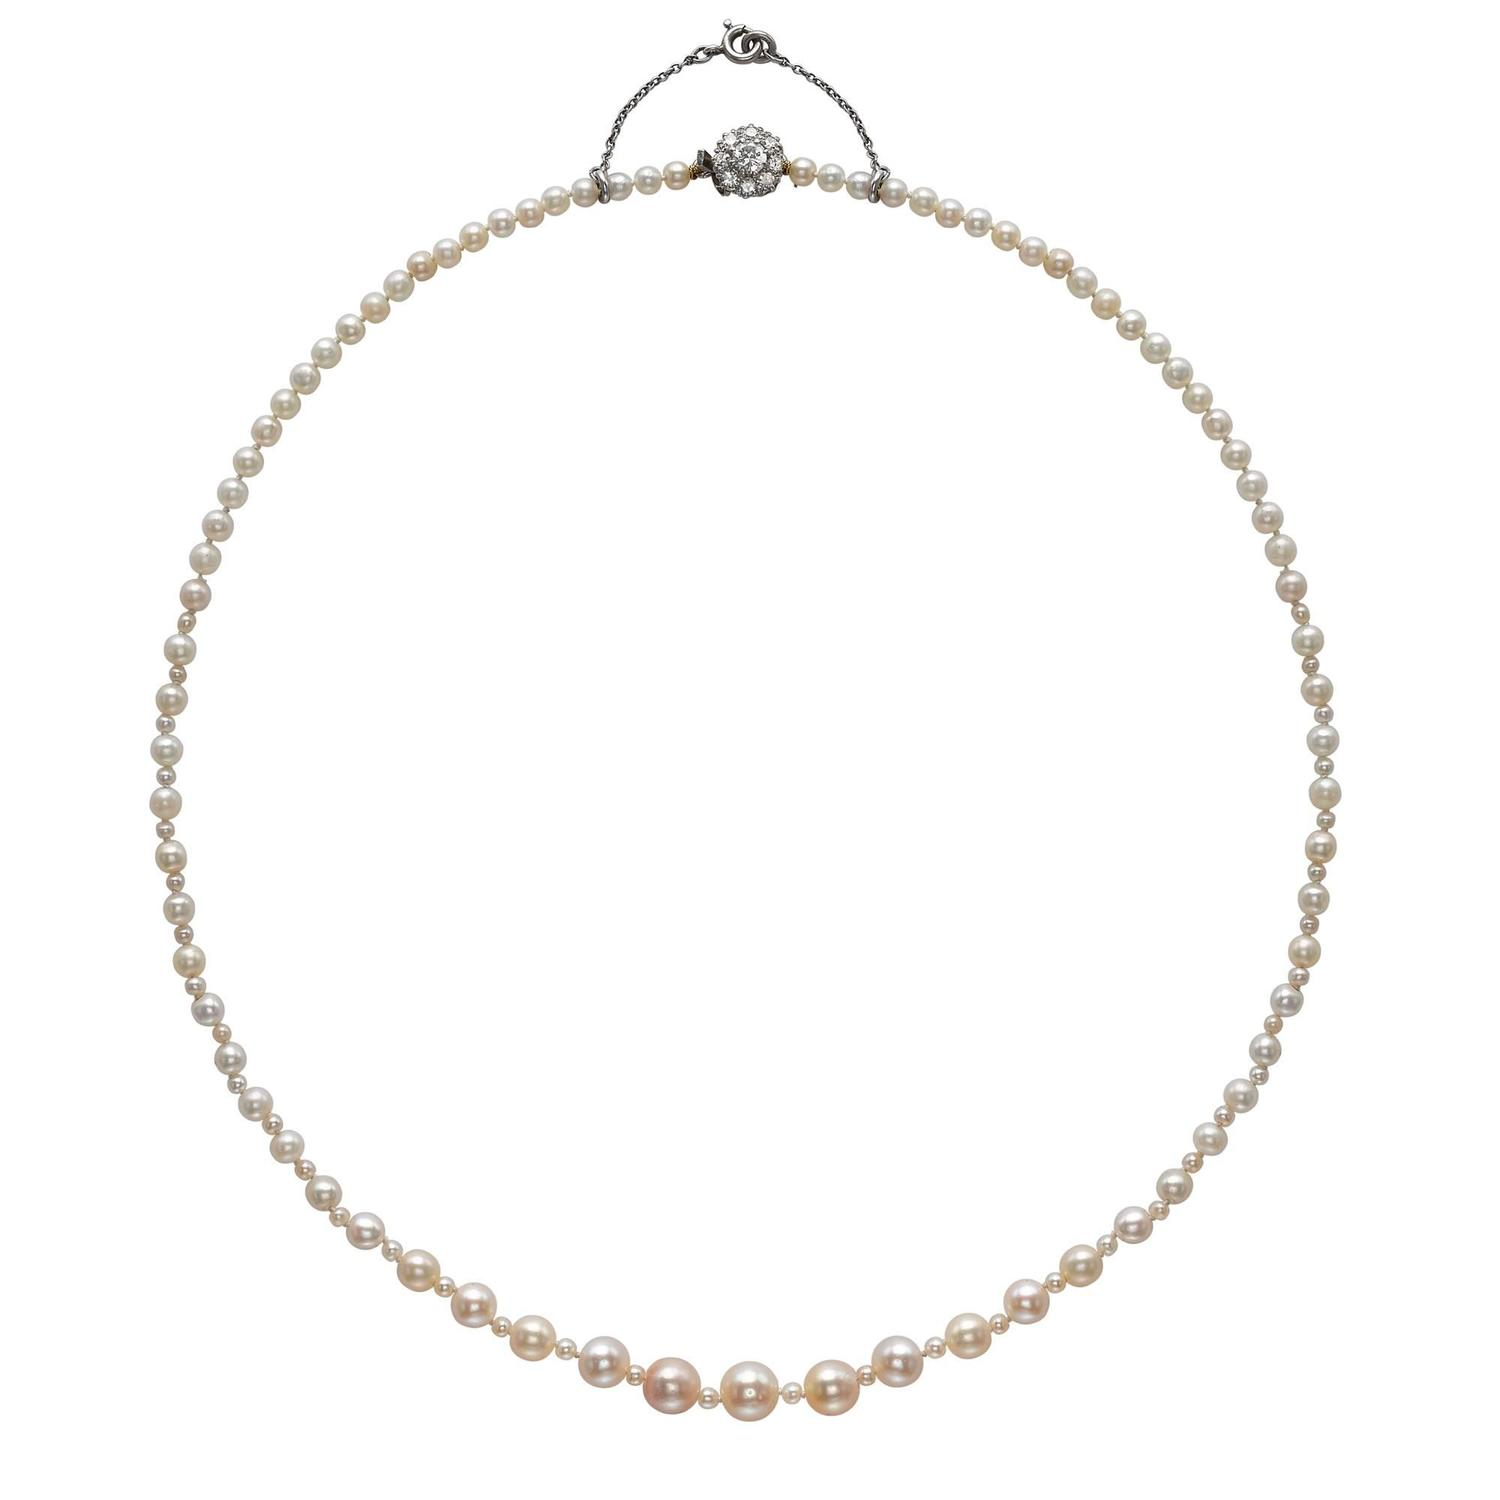 Natural Saltwater Pearl Necklace: Natural Saltwater Pearl Necklace With Diamond Clasp For